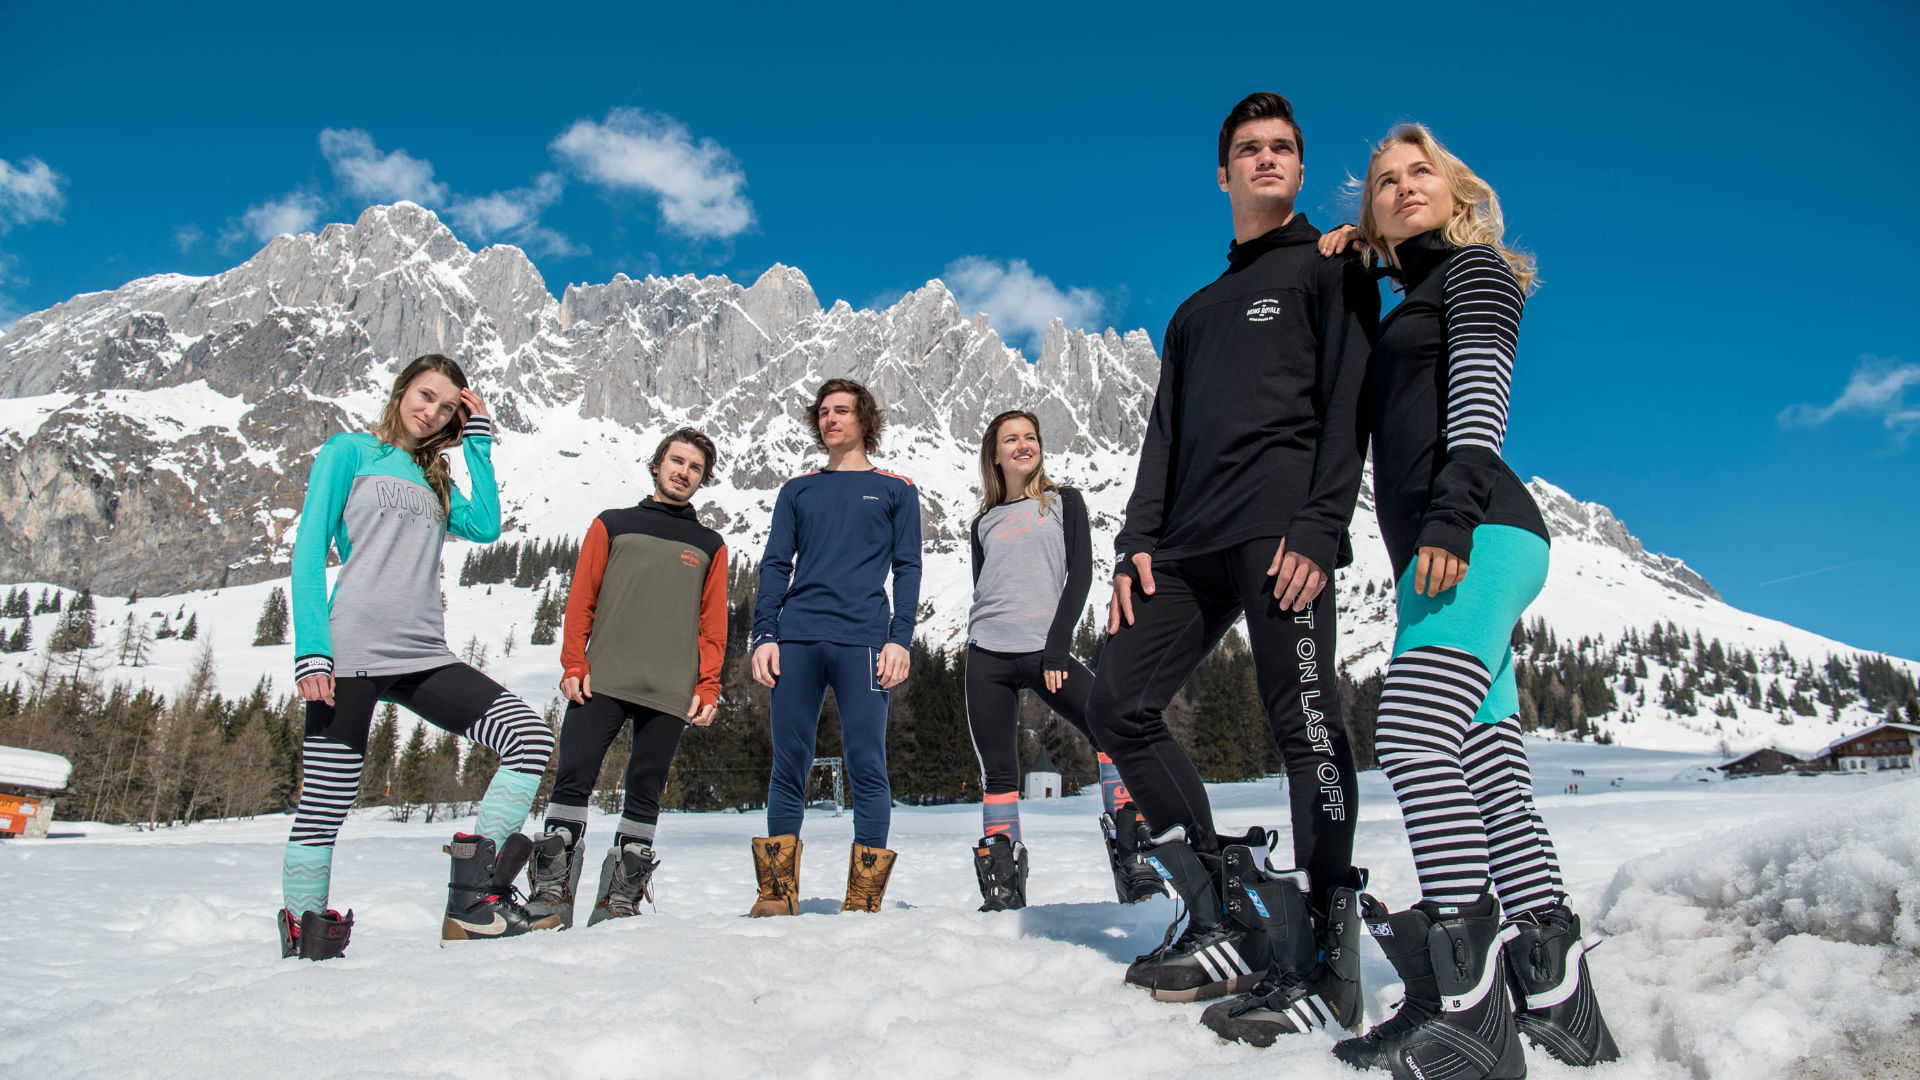 Snowboarders outside in Hochkeil with merino baselayers from Mons Royale